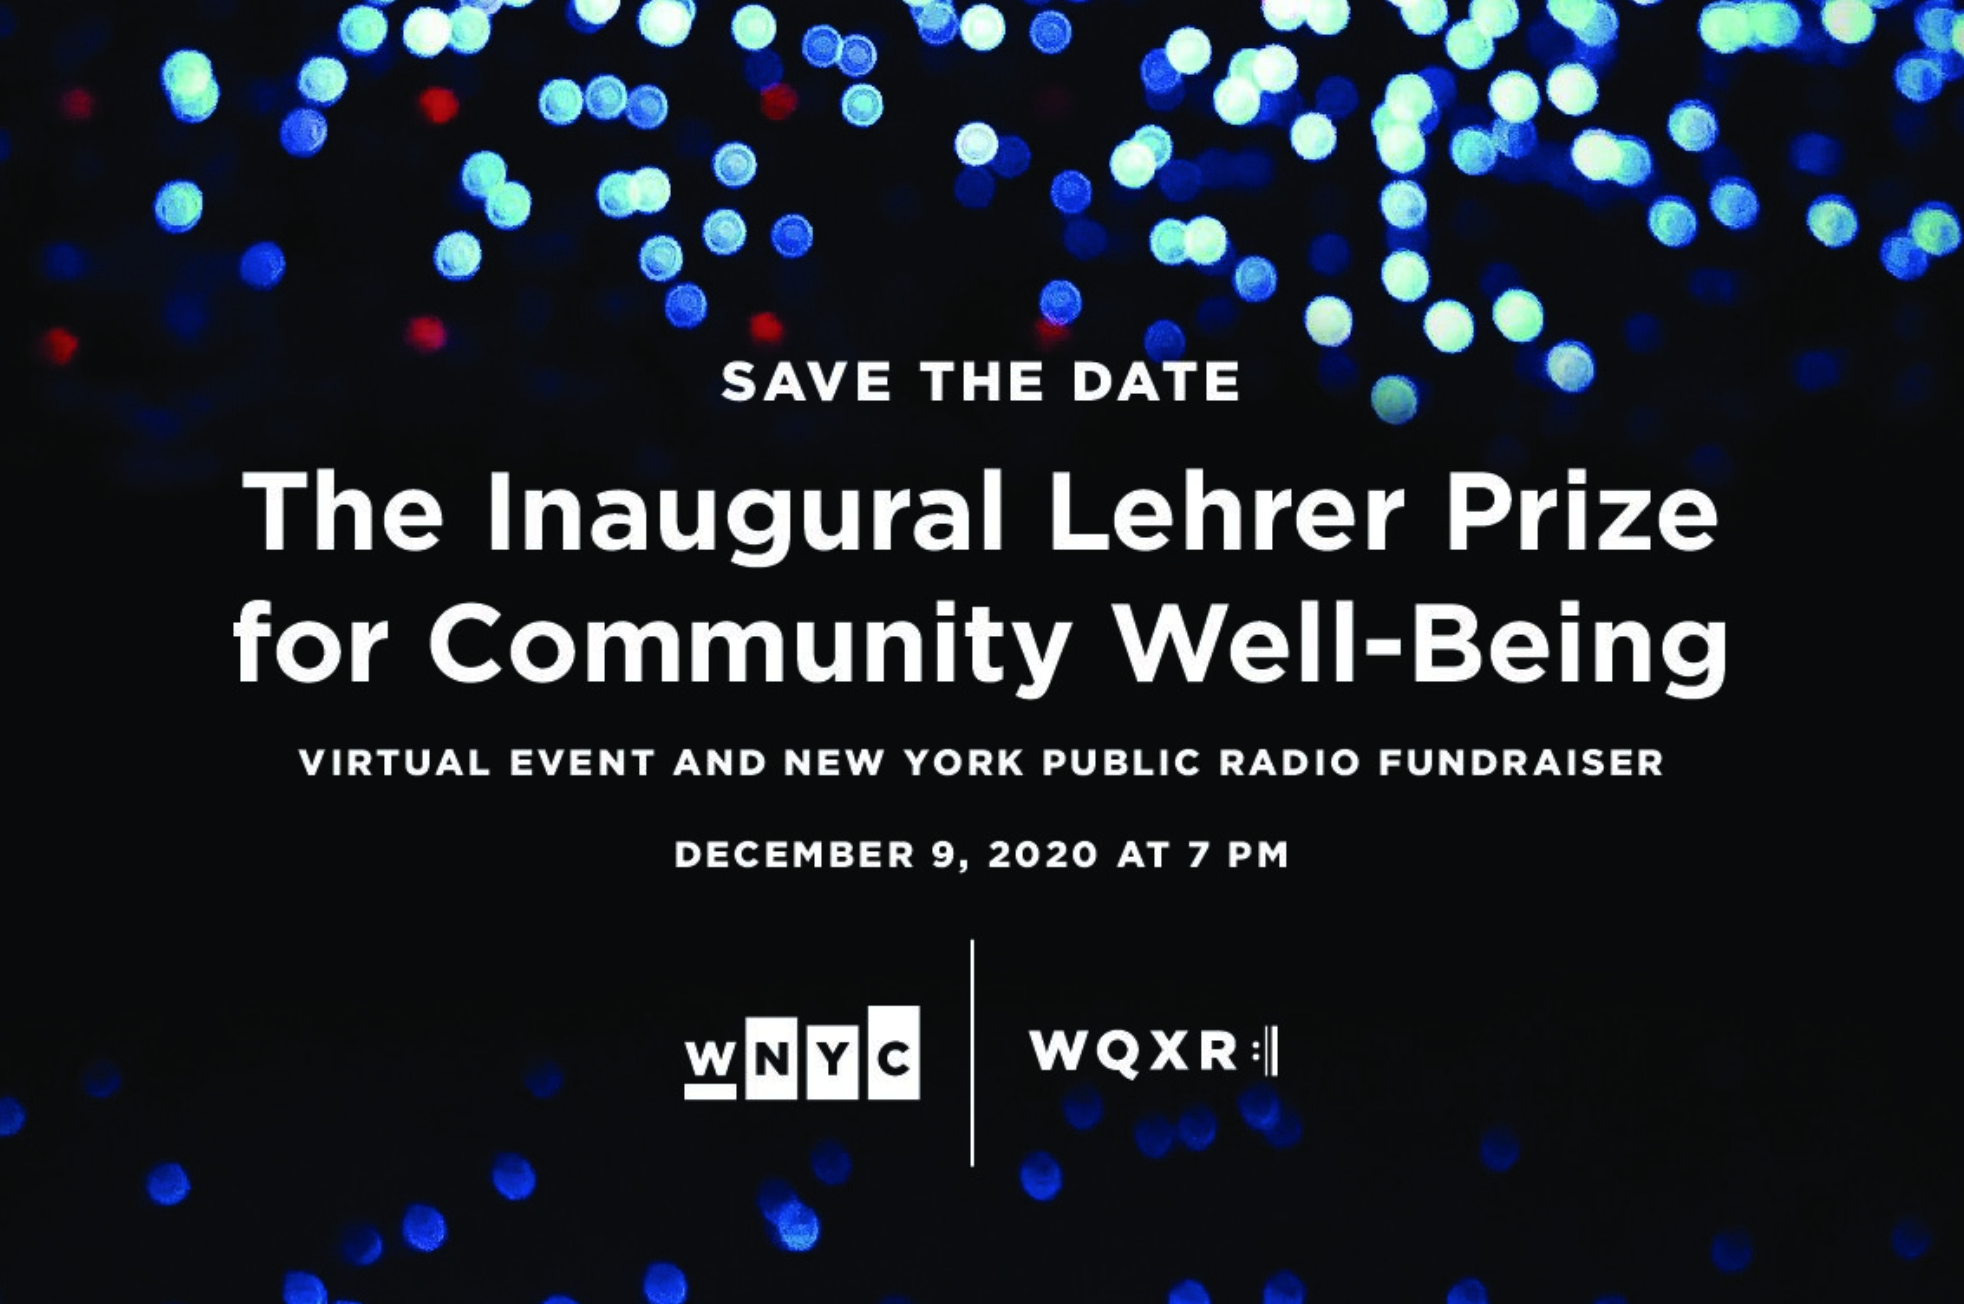 The Inaugural Lehrer Prize for Community Well-Being